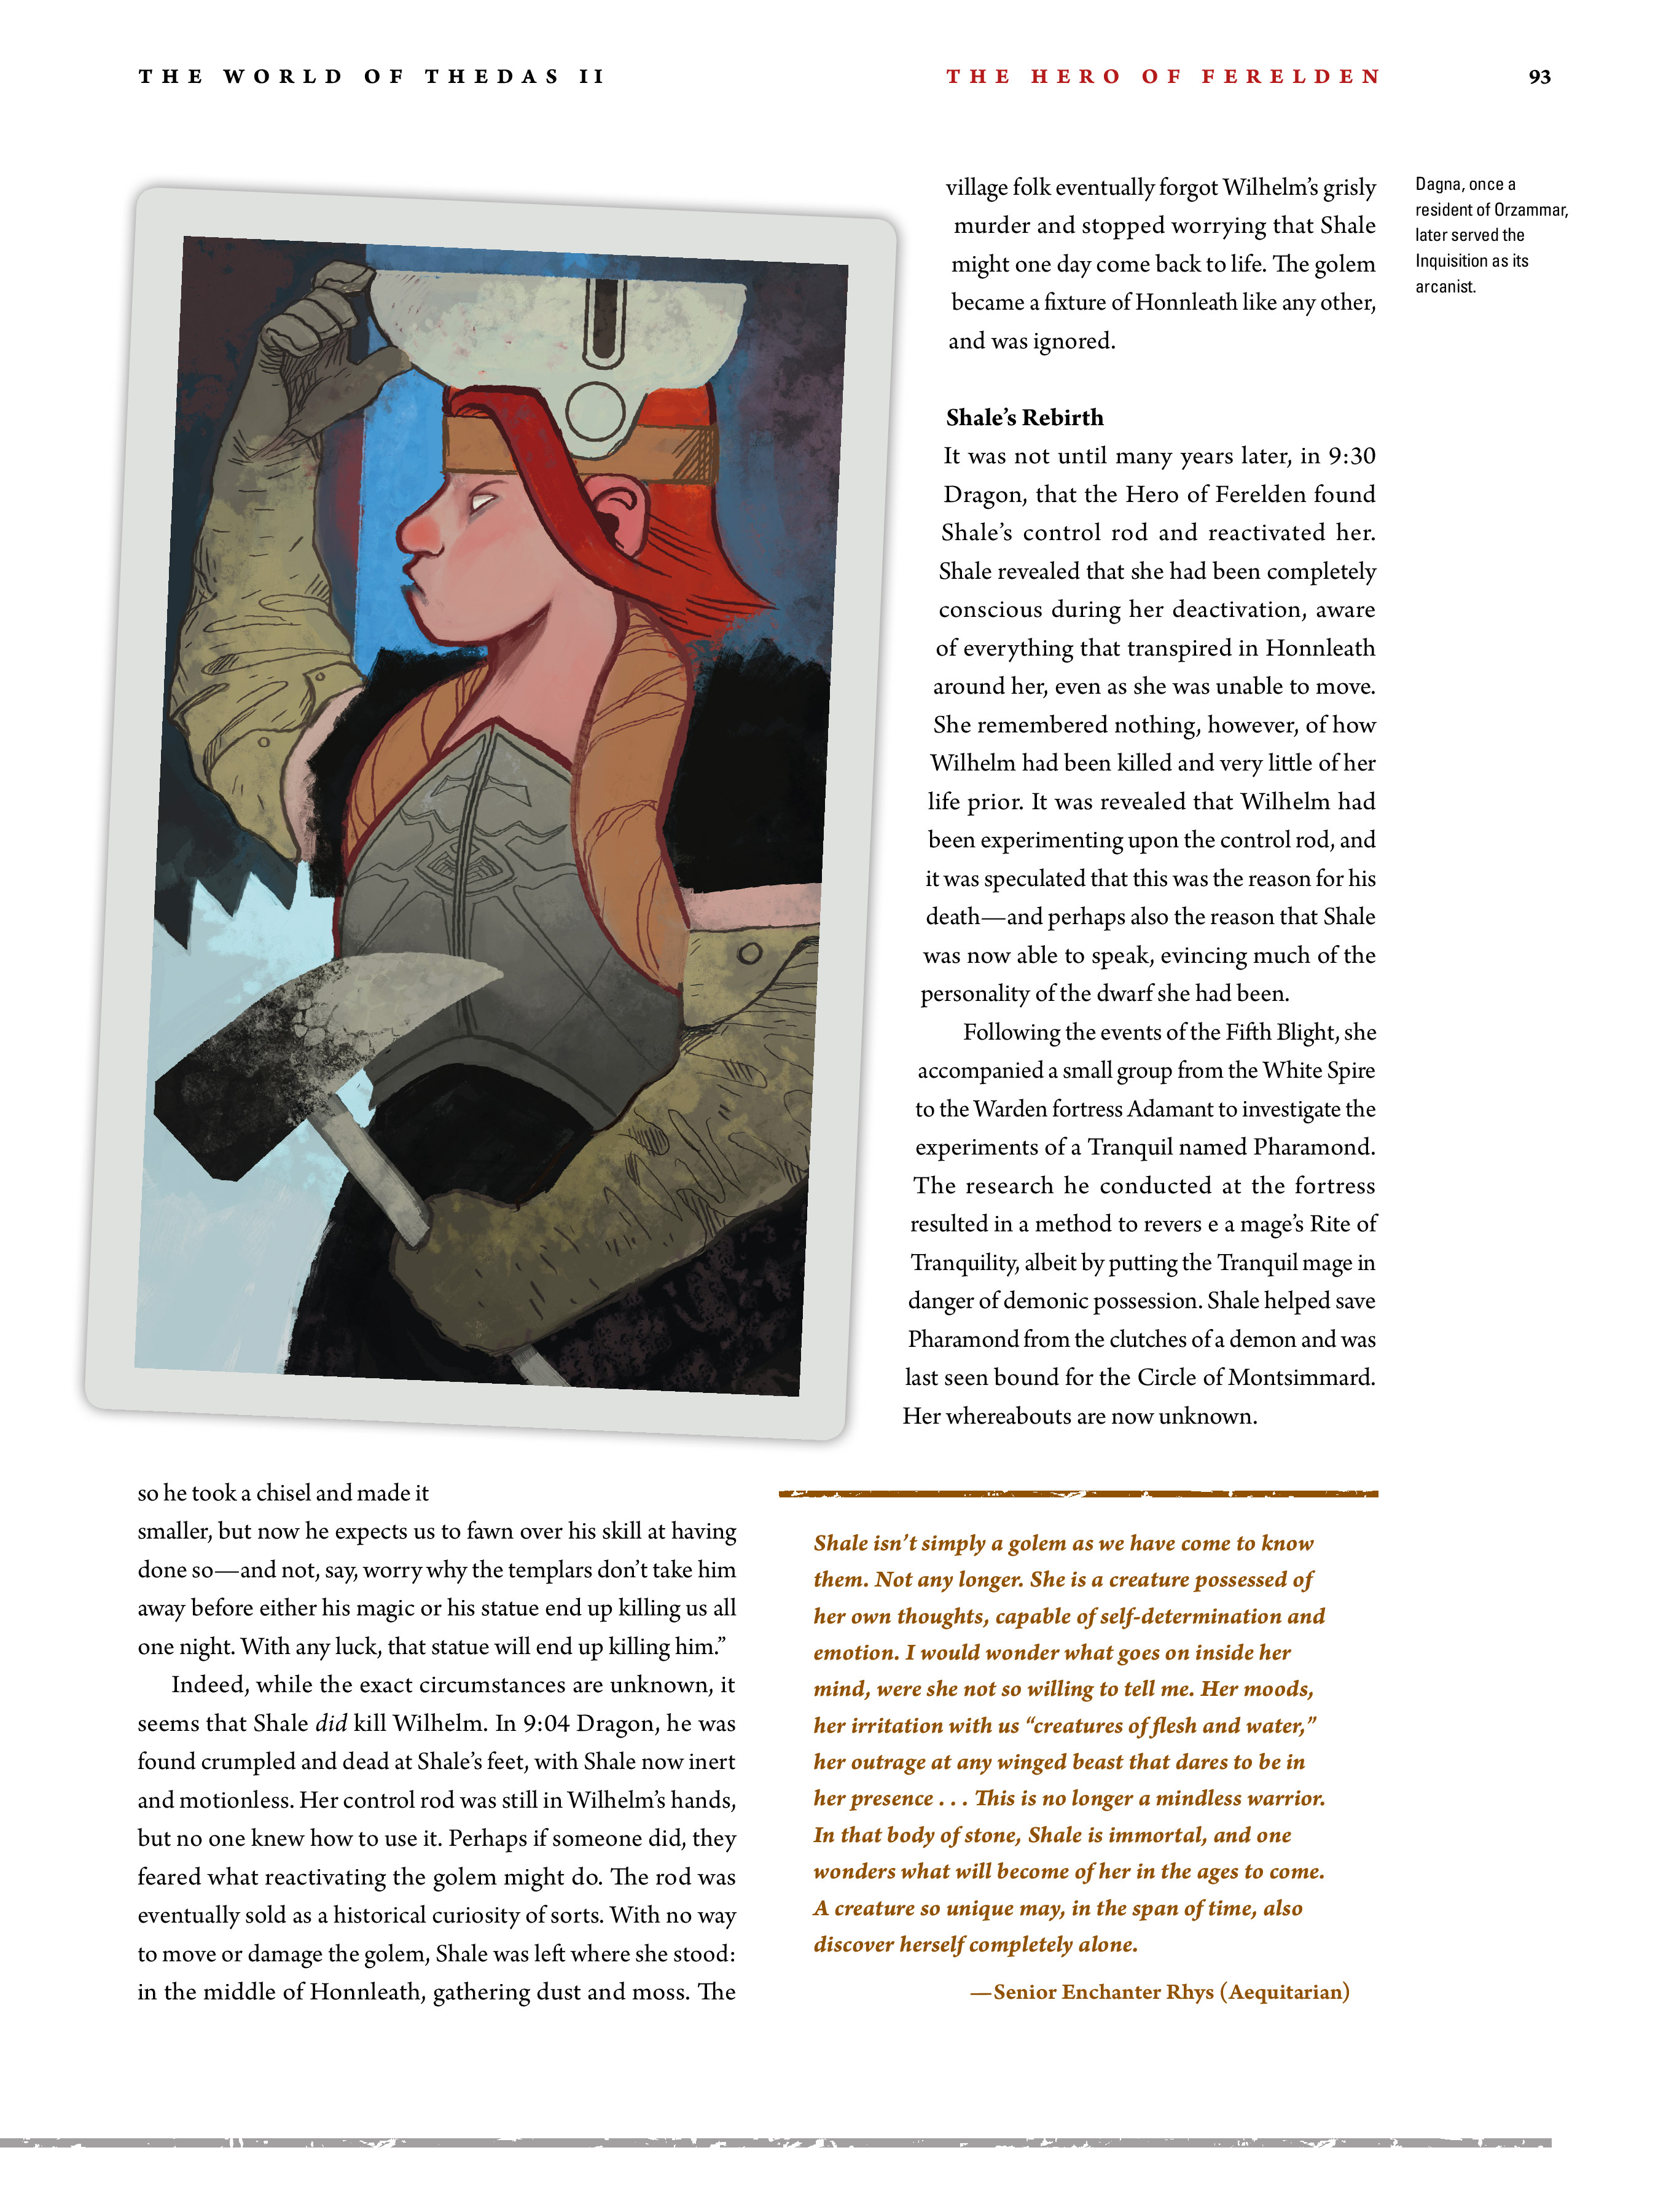 Read online Dragon Age: The World of Thedas comic -  Issue # TPB 2 - 89